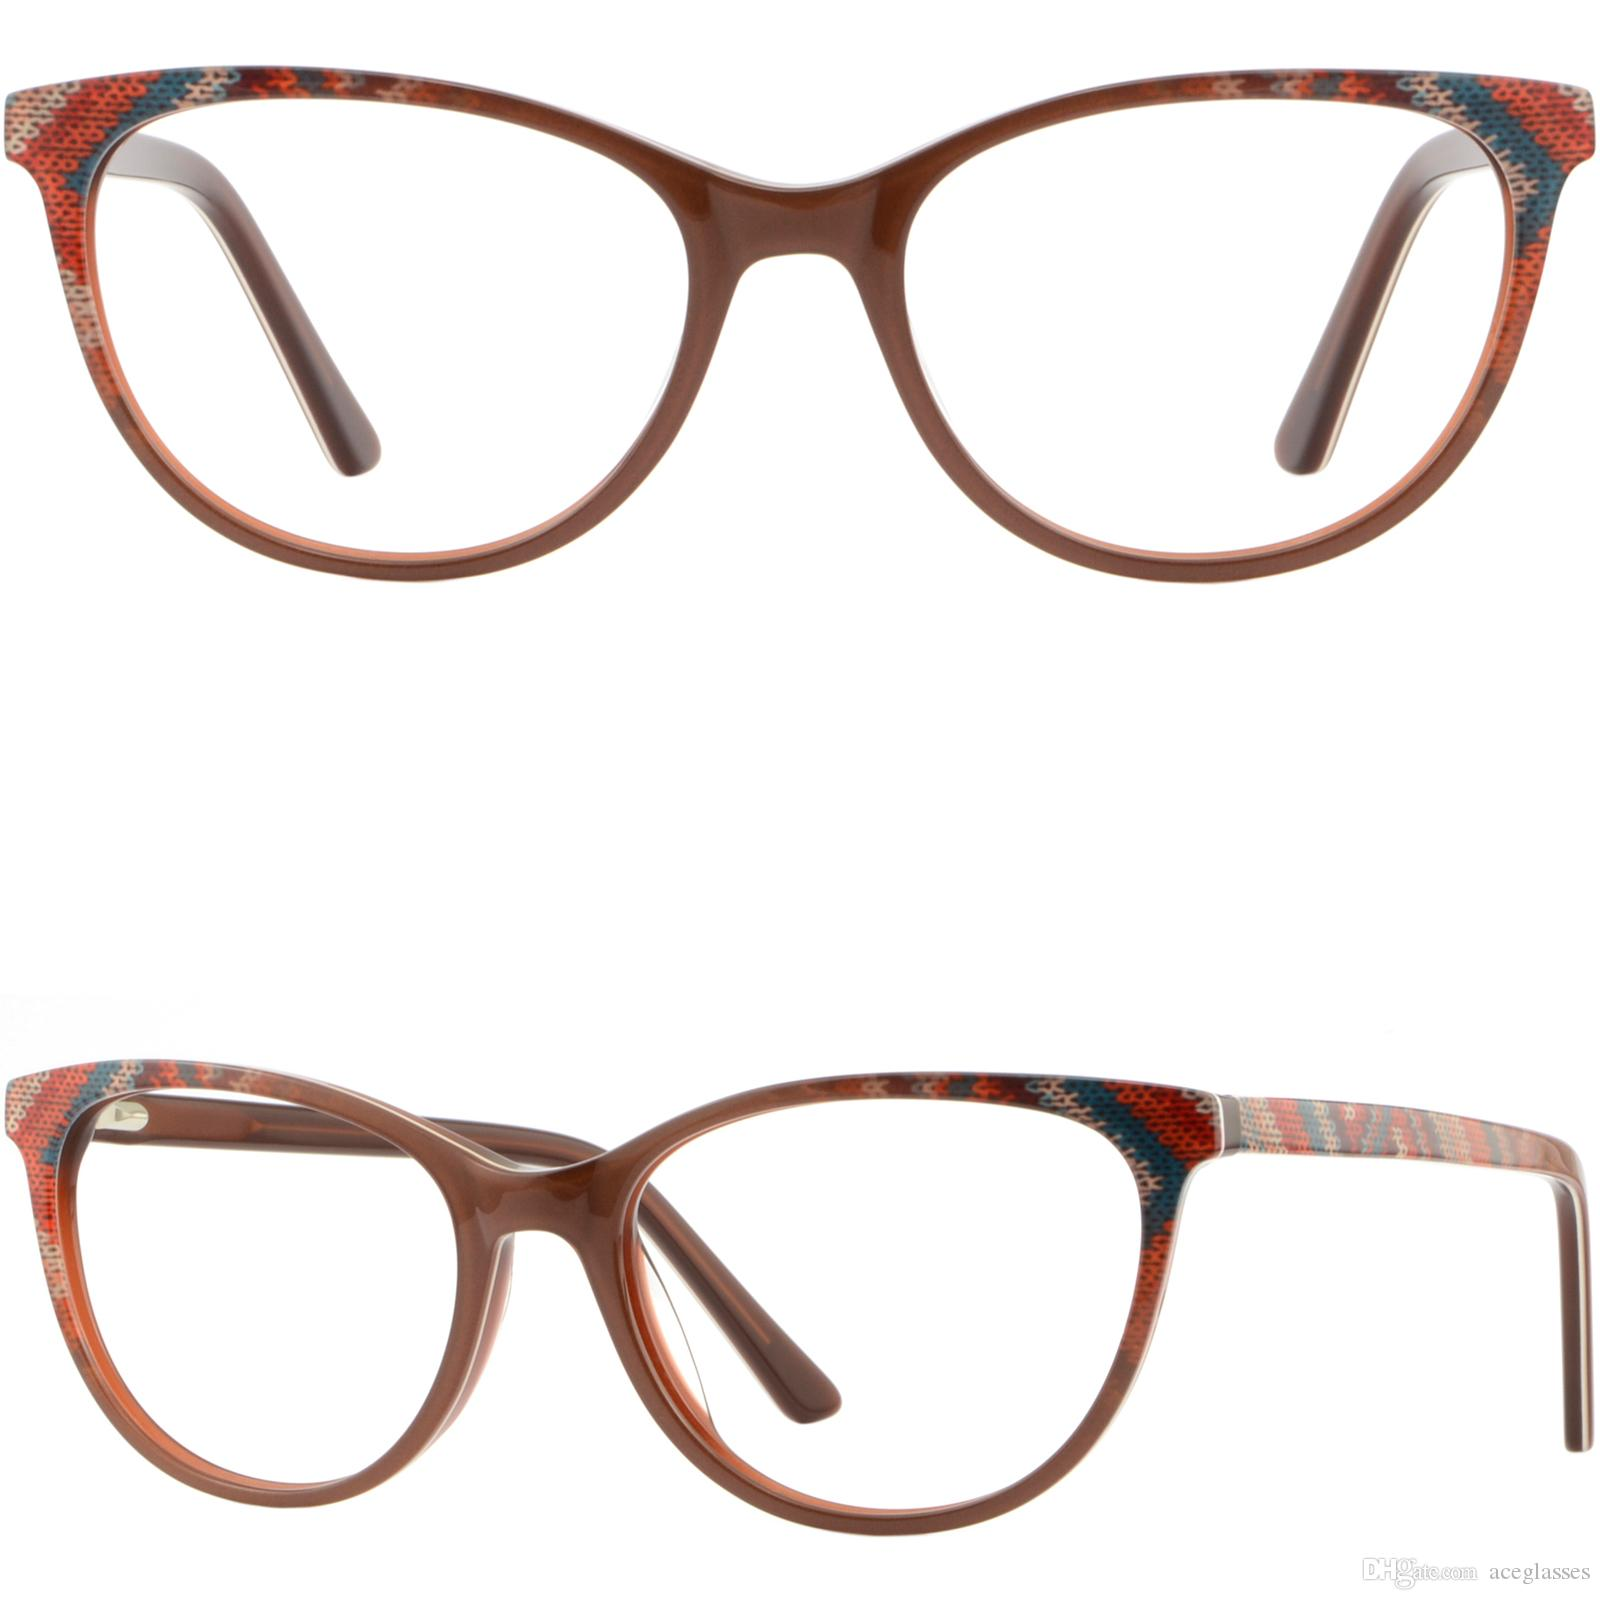 37dddd9143 Light Women s Eyeglasses Acetate Prescription Glasses Spring Hinges ...